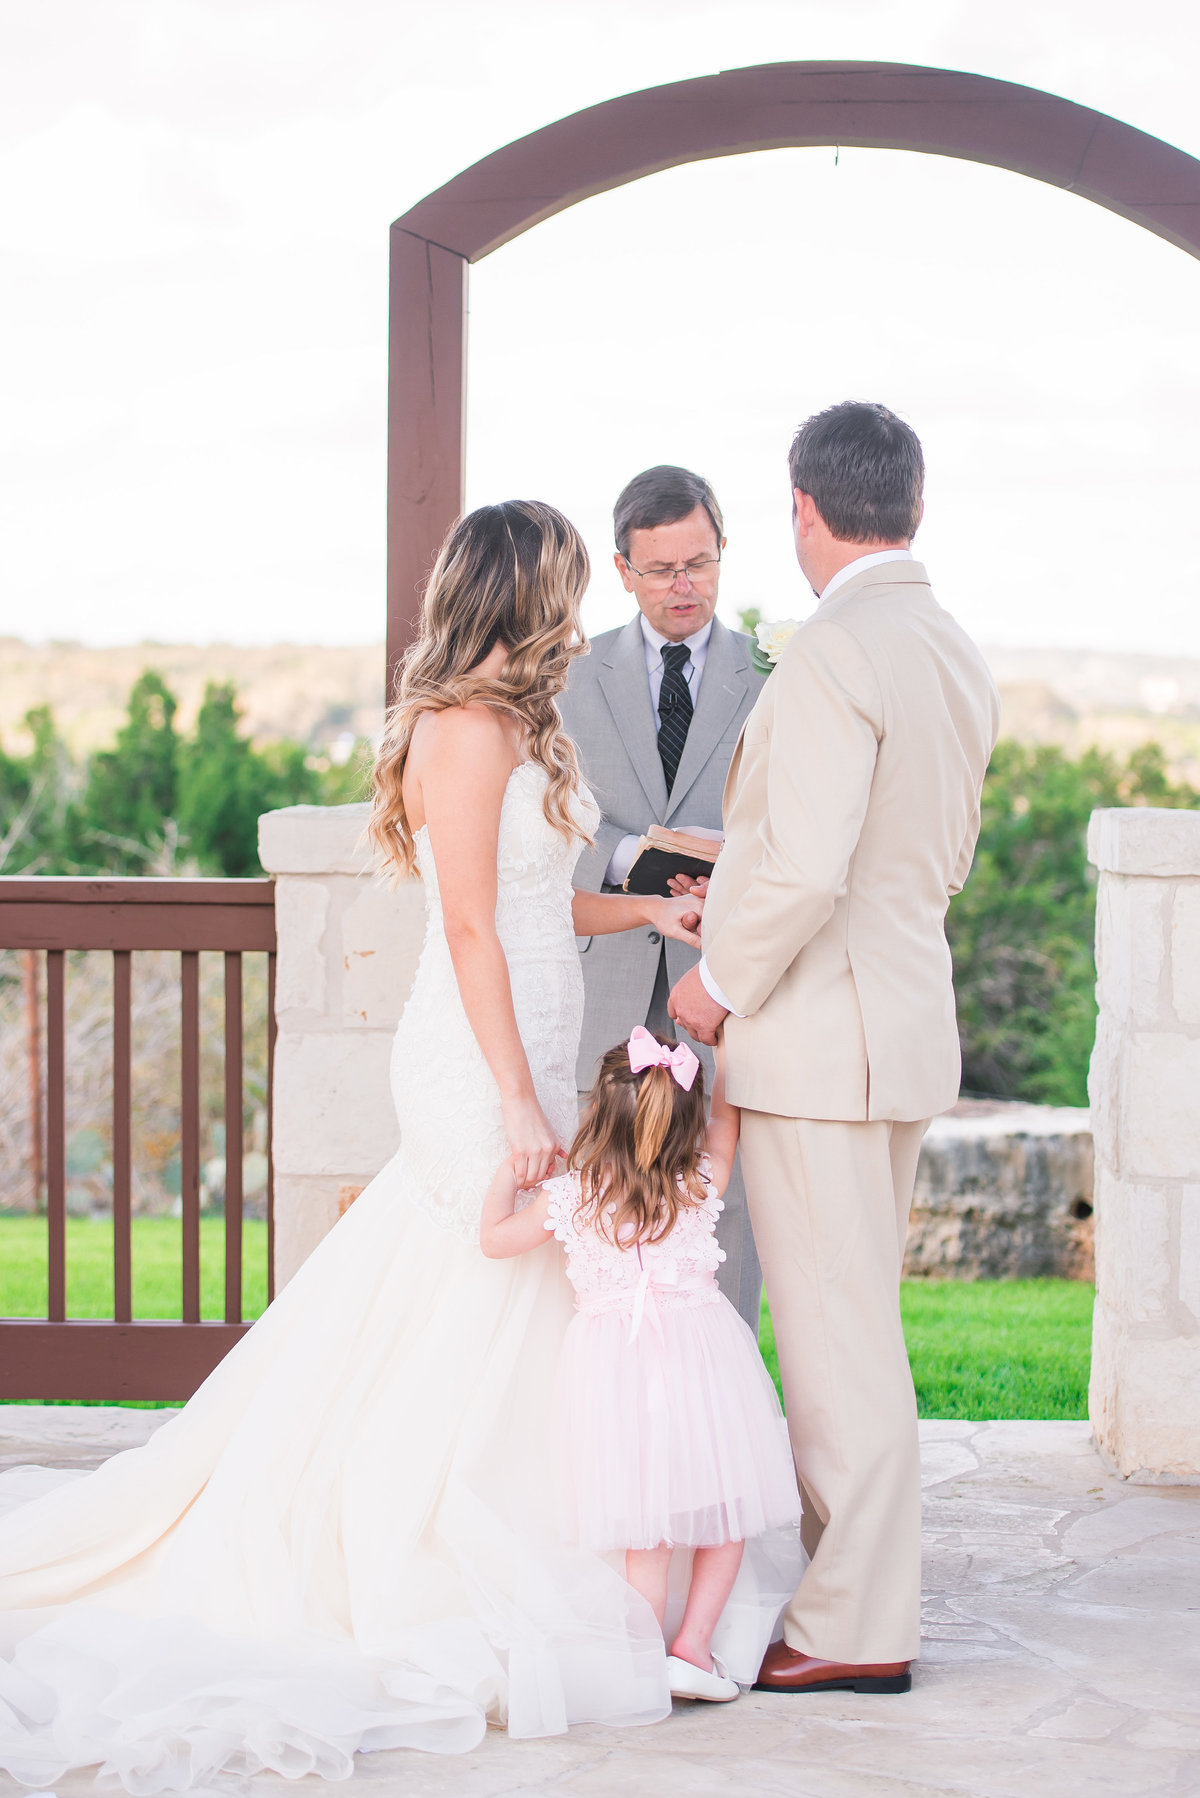 UndertheSunPhotography_PothWedding-5801